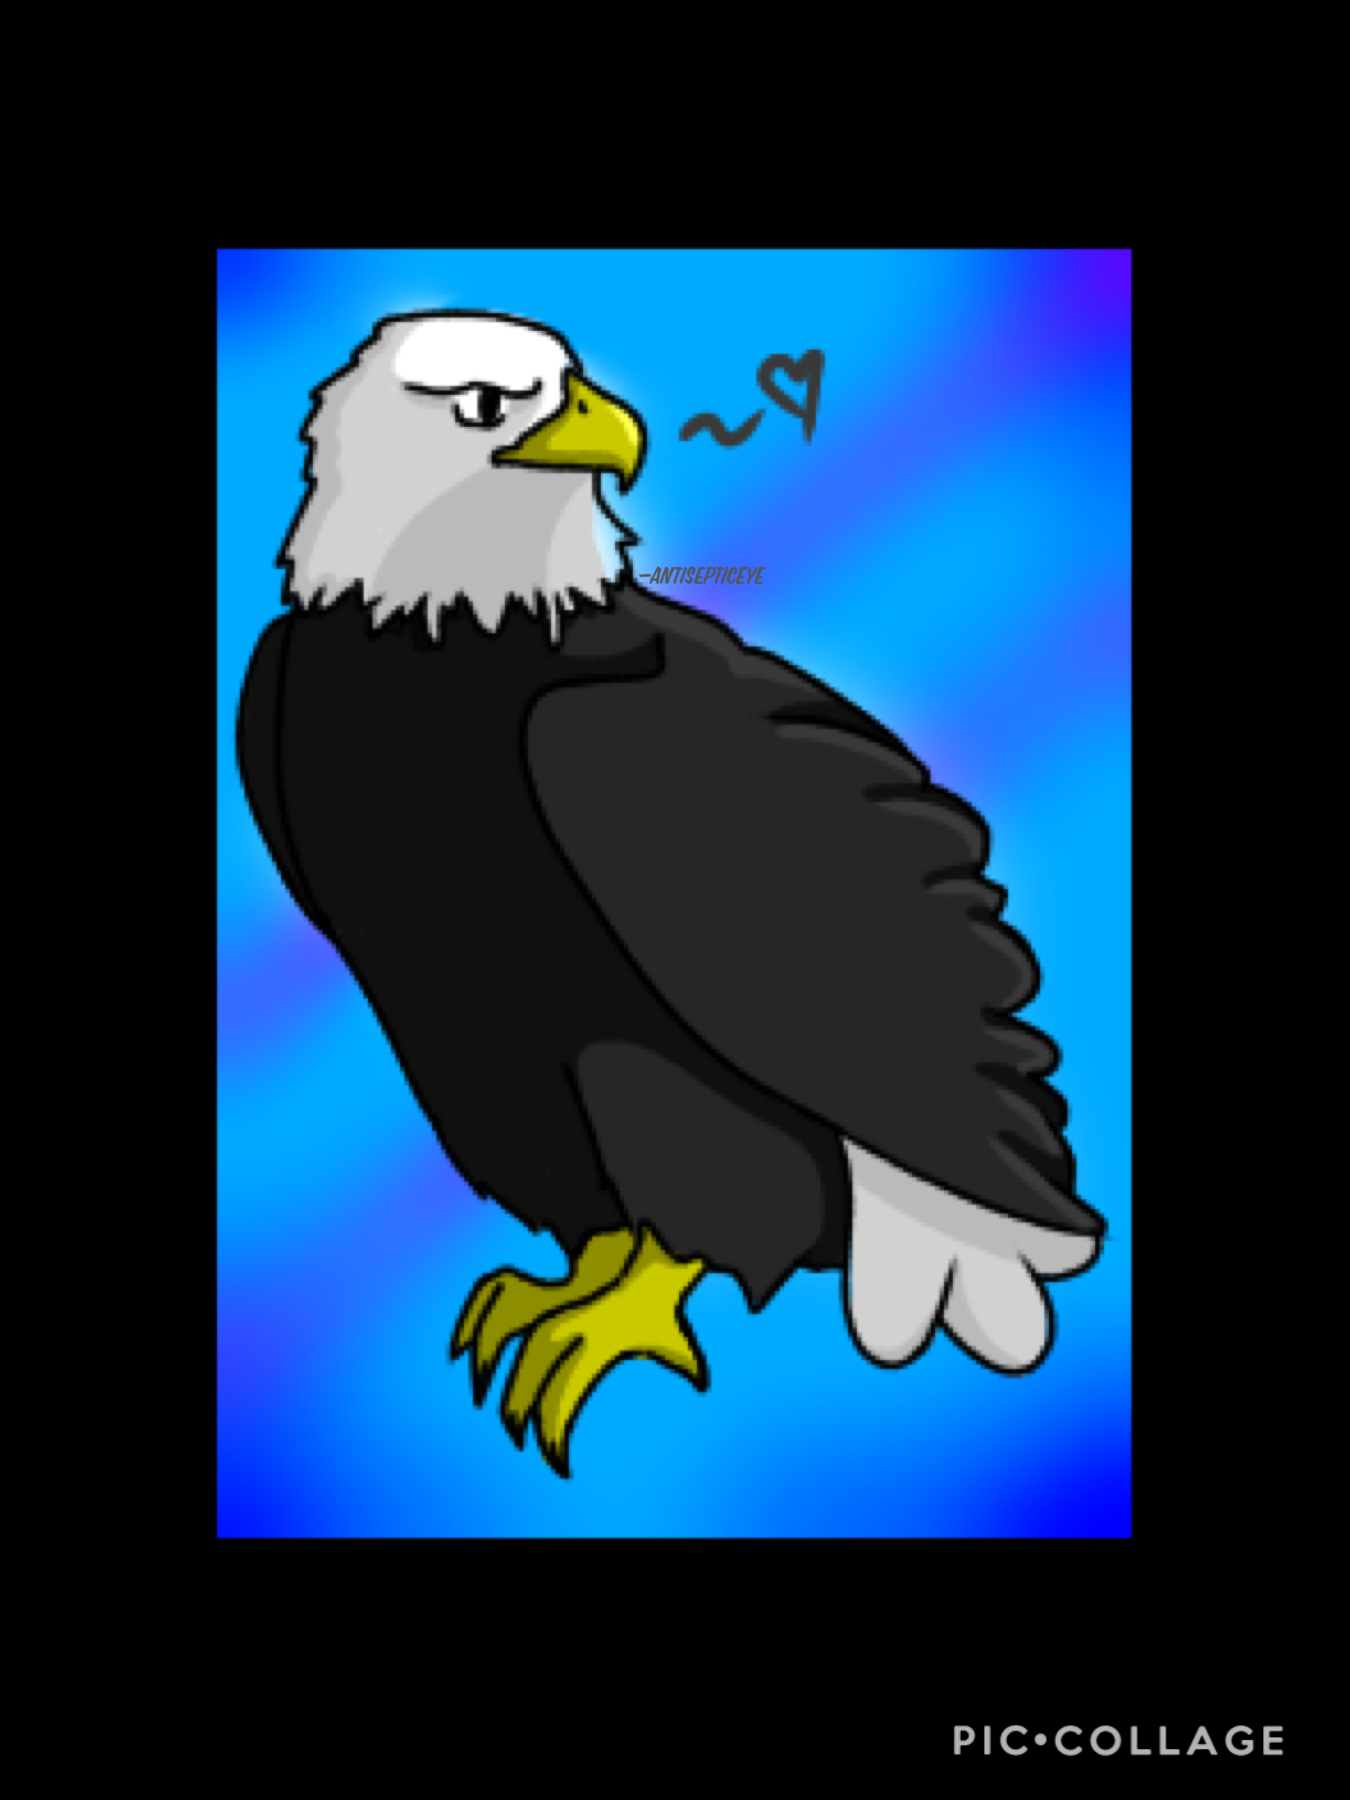 A little late but this is for the smol challenge by Alazel. Introducing Eddie the Eagle, my most favourite and sacred childhood toy that I would never go of in a million years~